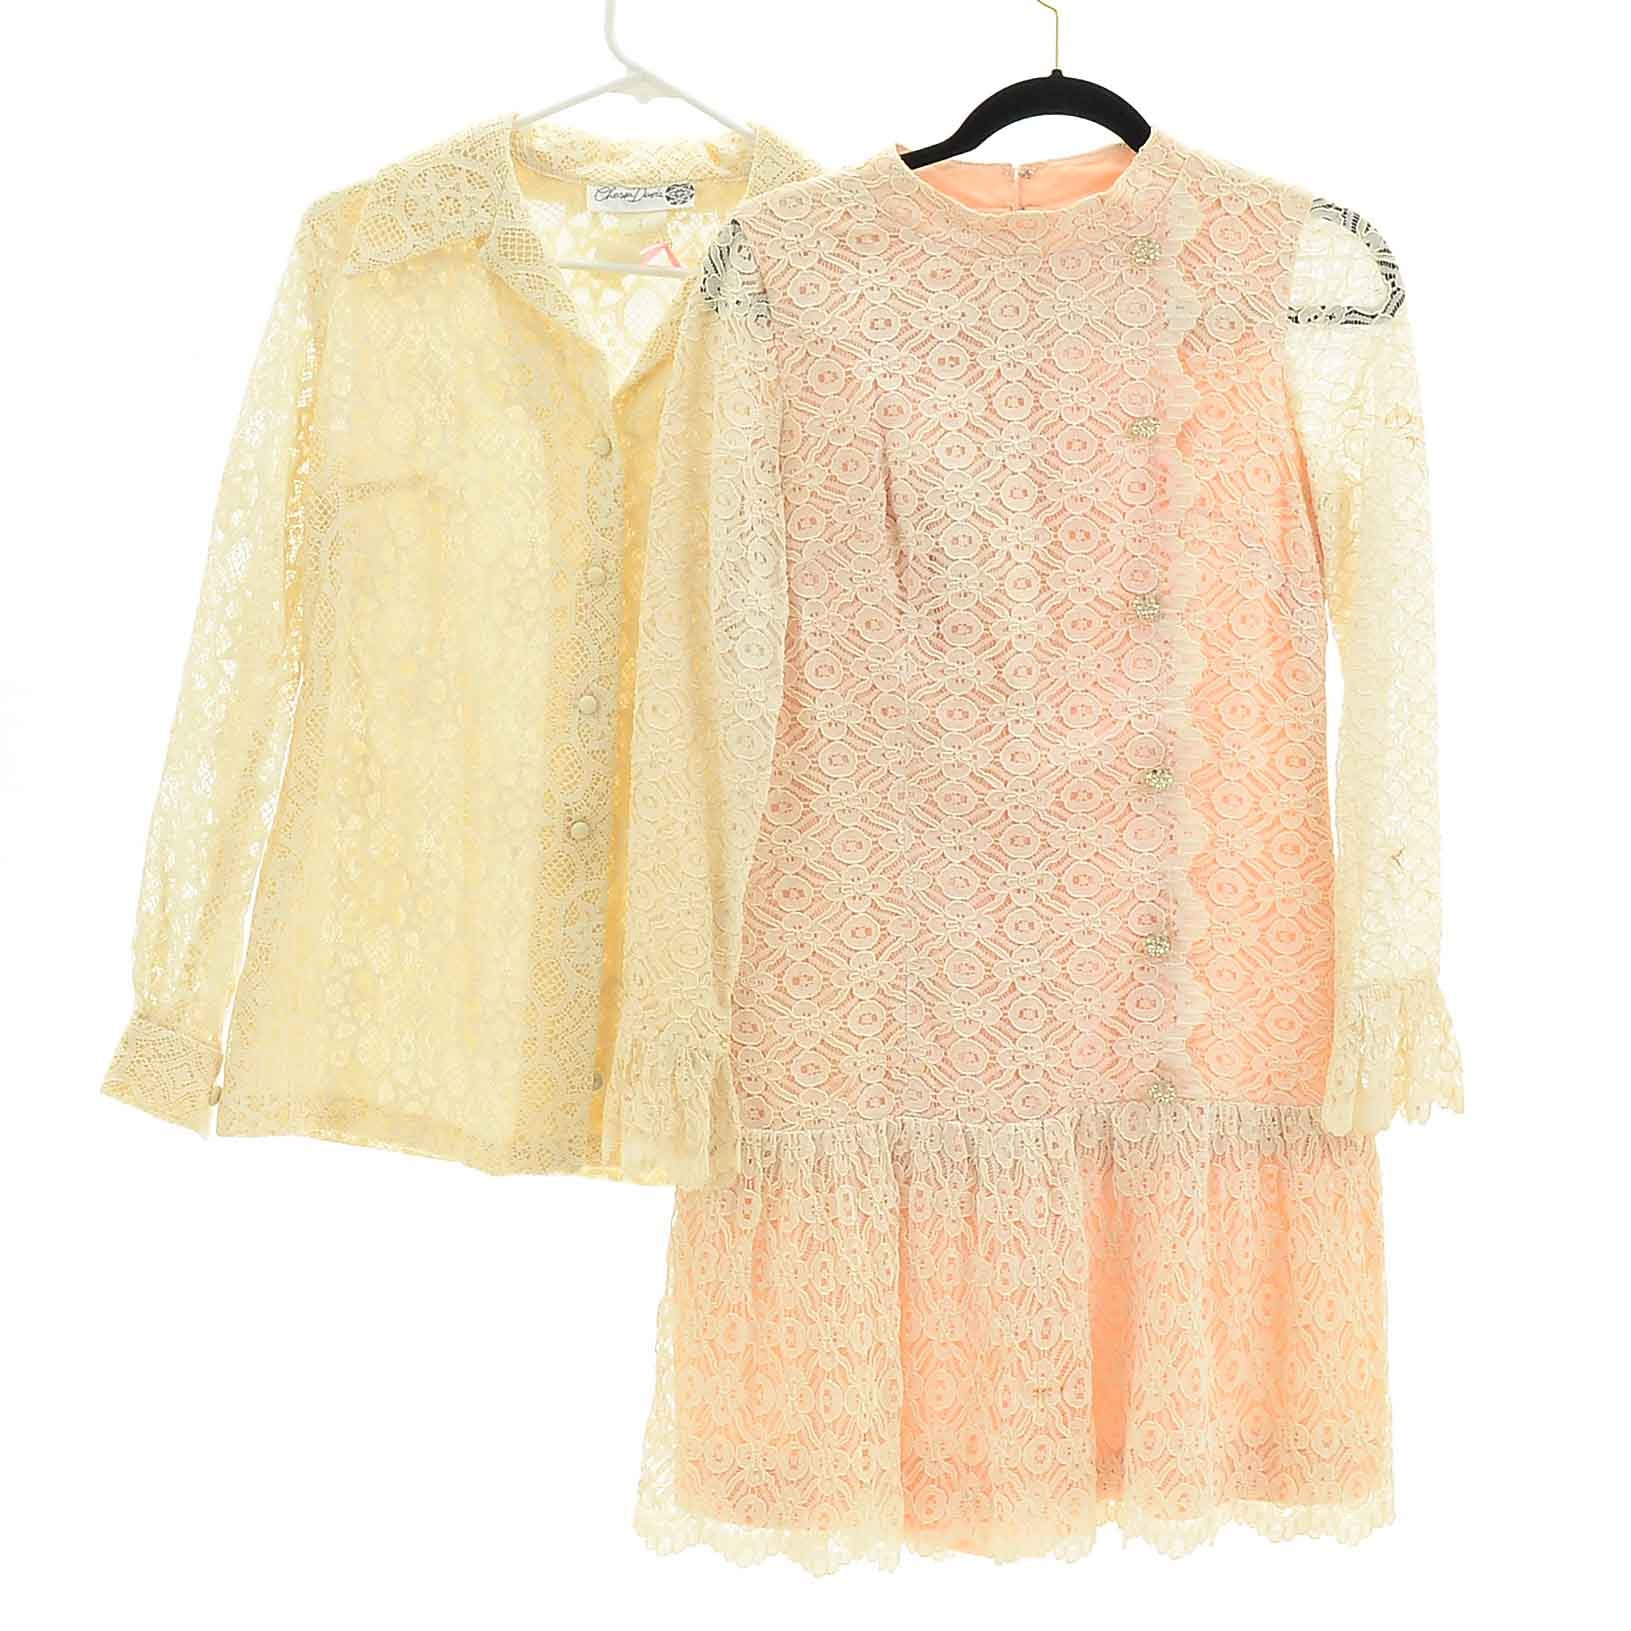 Vintage Lace Jacket and Dress